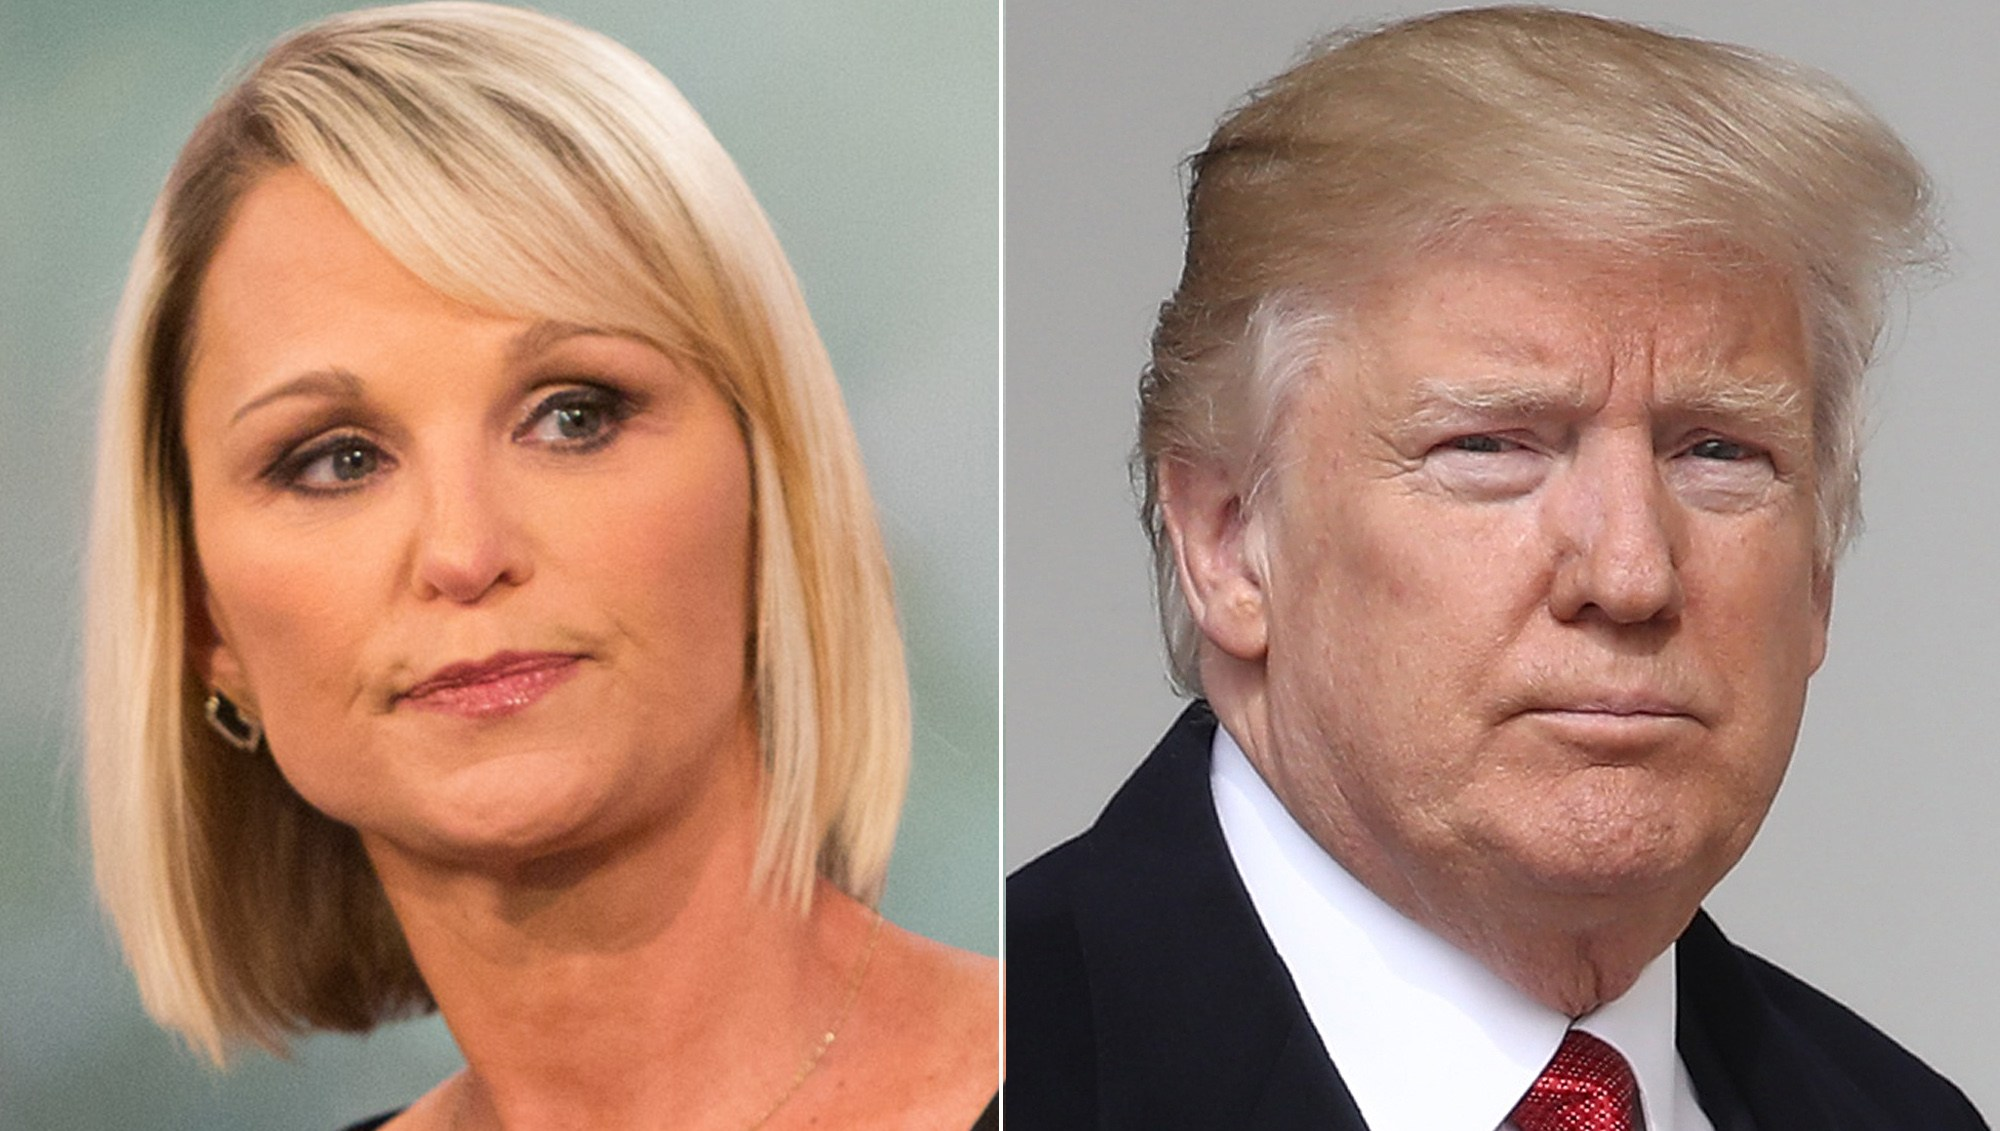 Juliet Huddy Alleges Donald Trump Tried to Kiss Her